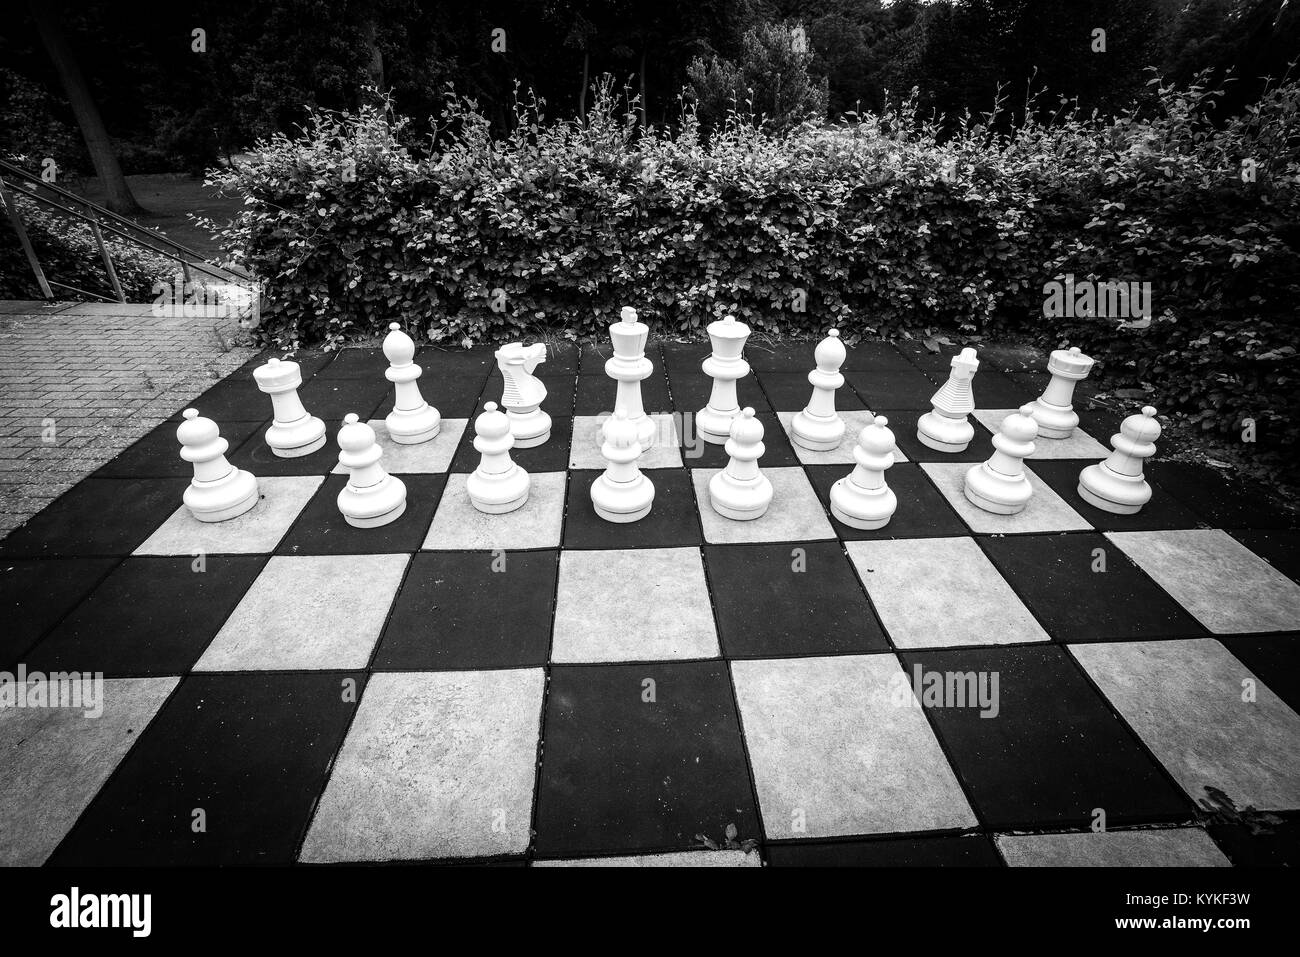 White pieces in a large chess game in a garden in black and white colors - Stock Image